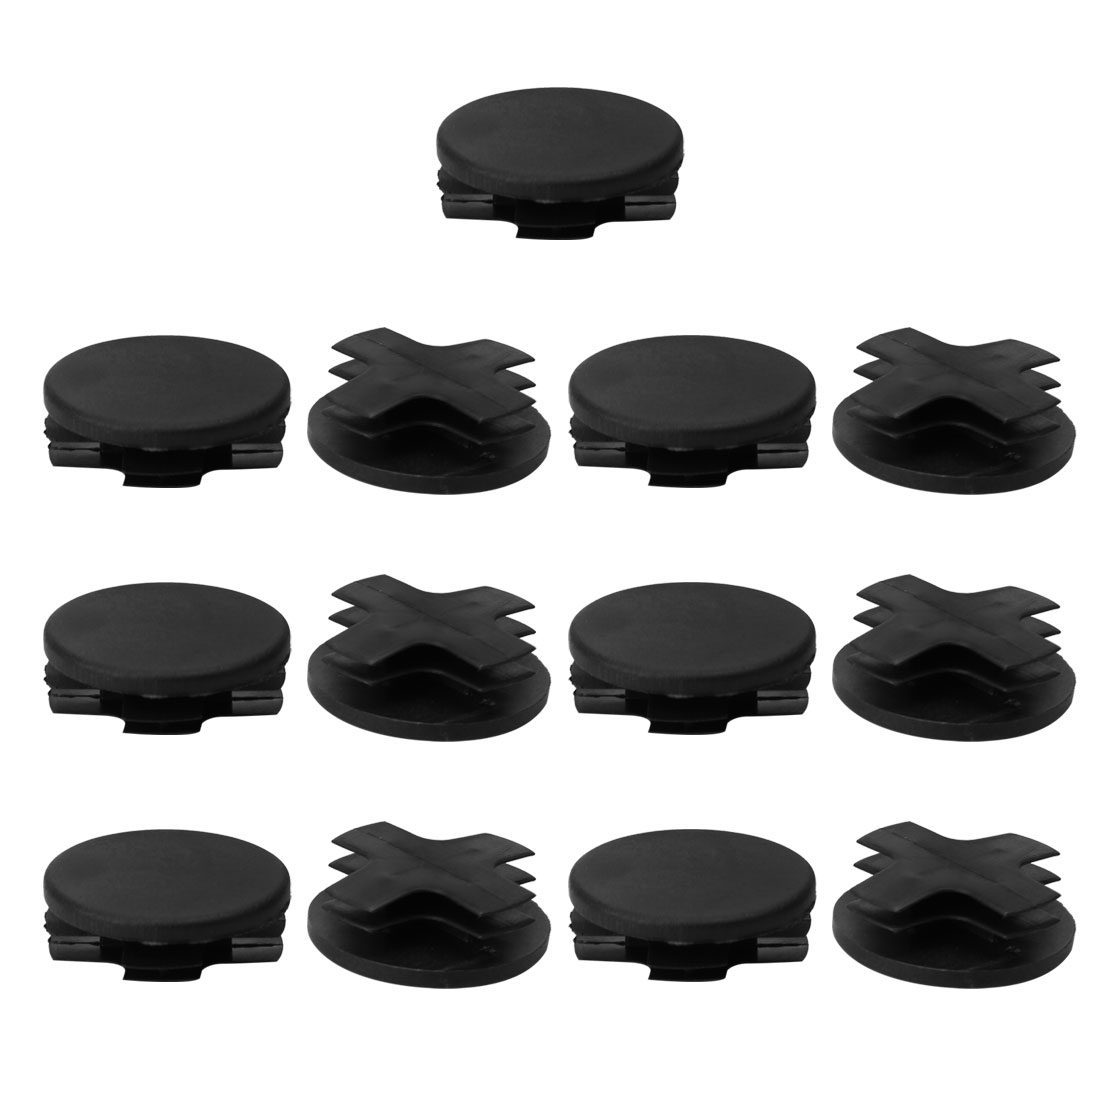 """13pcs 1 1/4"""" Dia 32mm OD Plastic Round Tube Insert Rib Pipe Cover Cap Black Floor Furniture Feet Protector, Fit for 1.14 - image 7 of 7"""